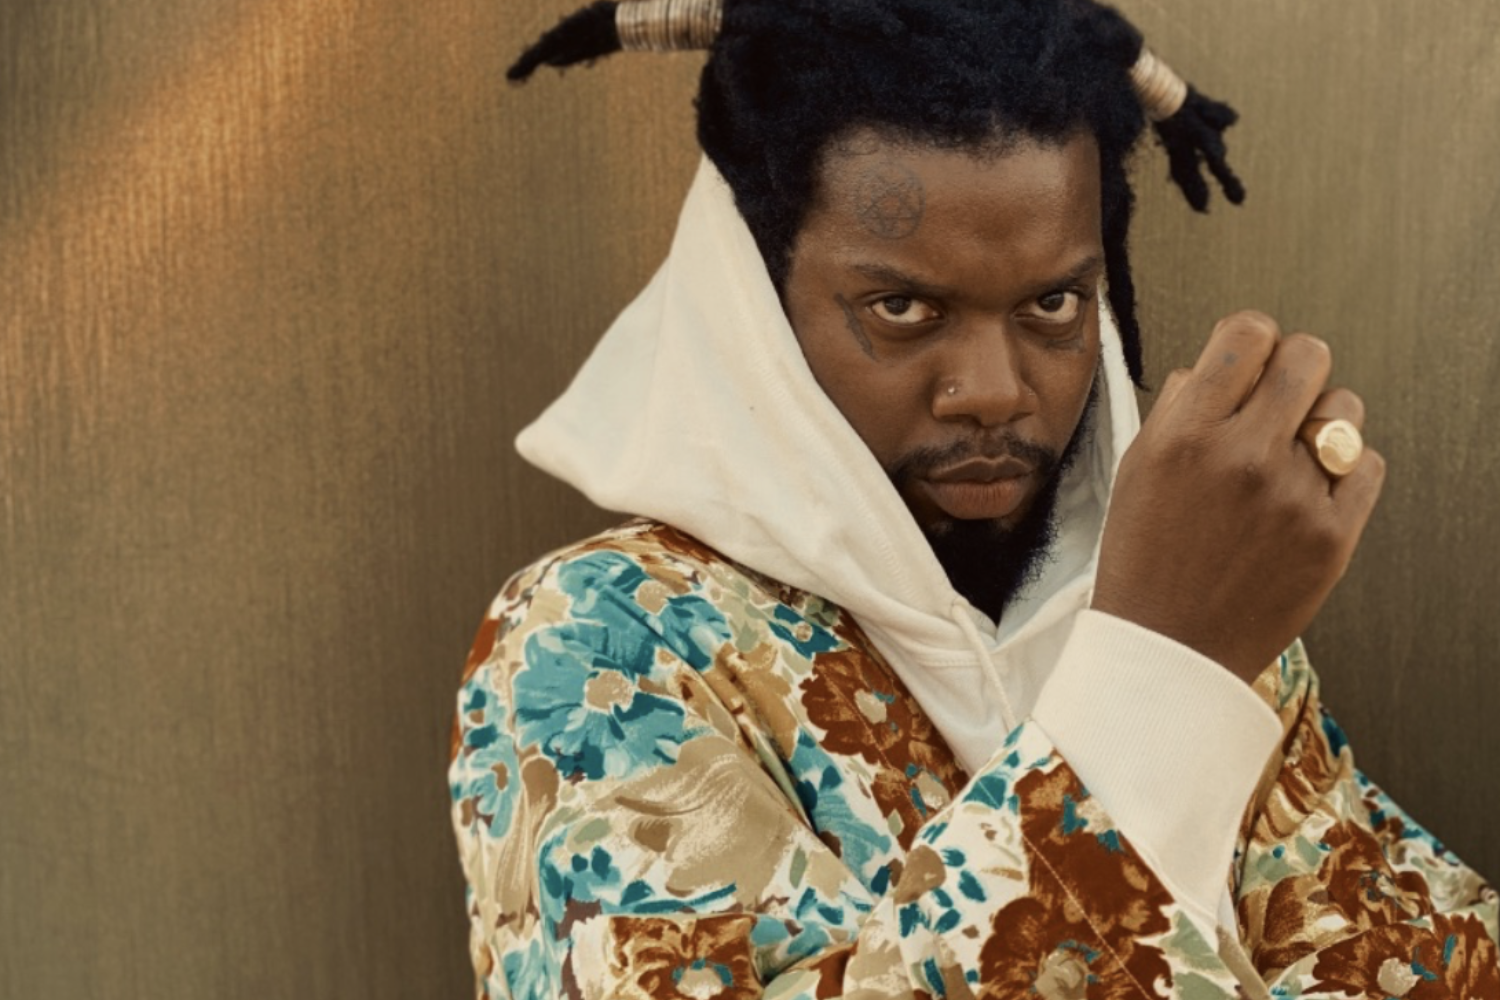 serpentwithfeet unveils new single 'Same Size Shoe'